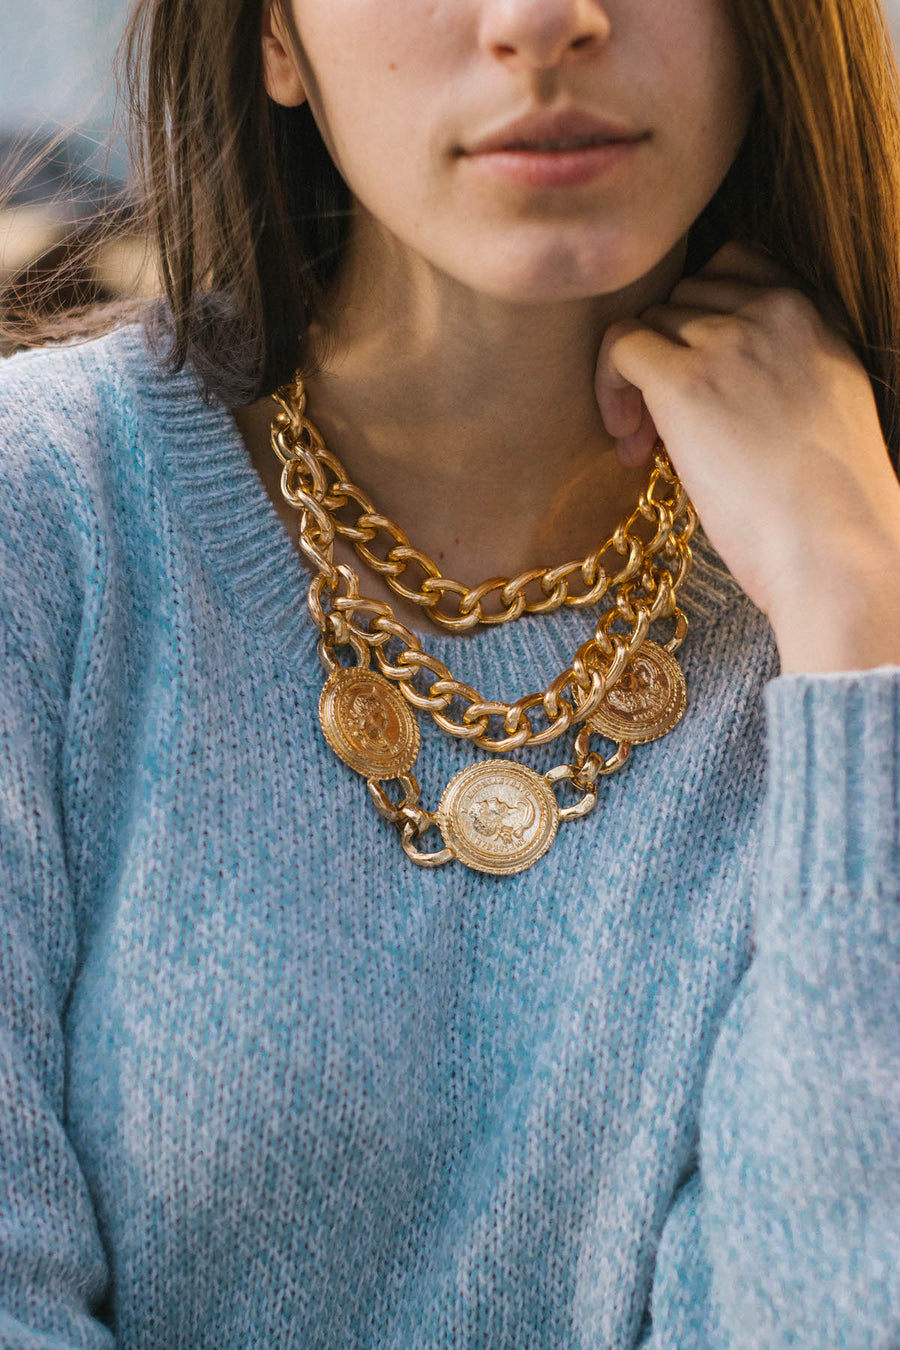 Golden Chain & coin Necklace